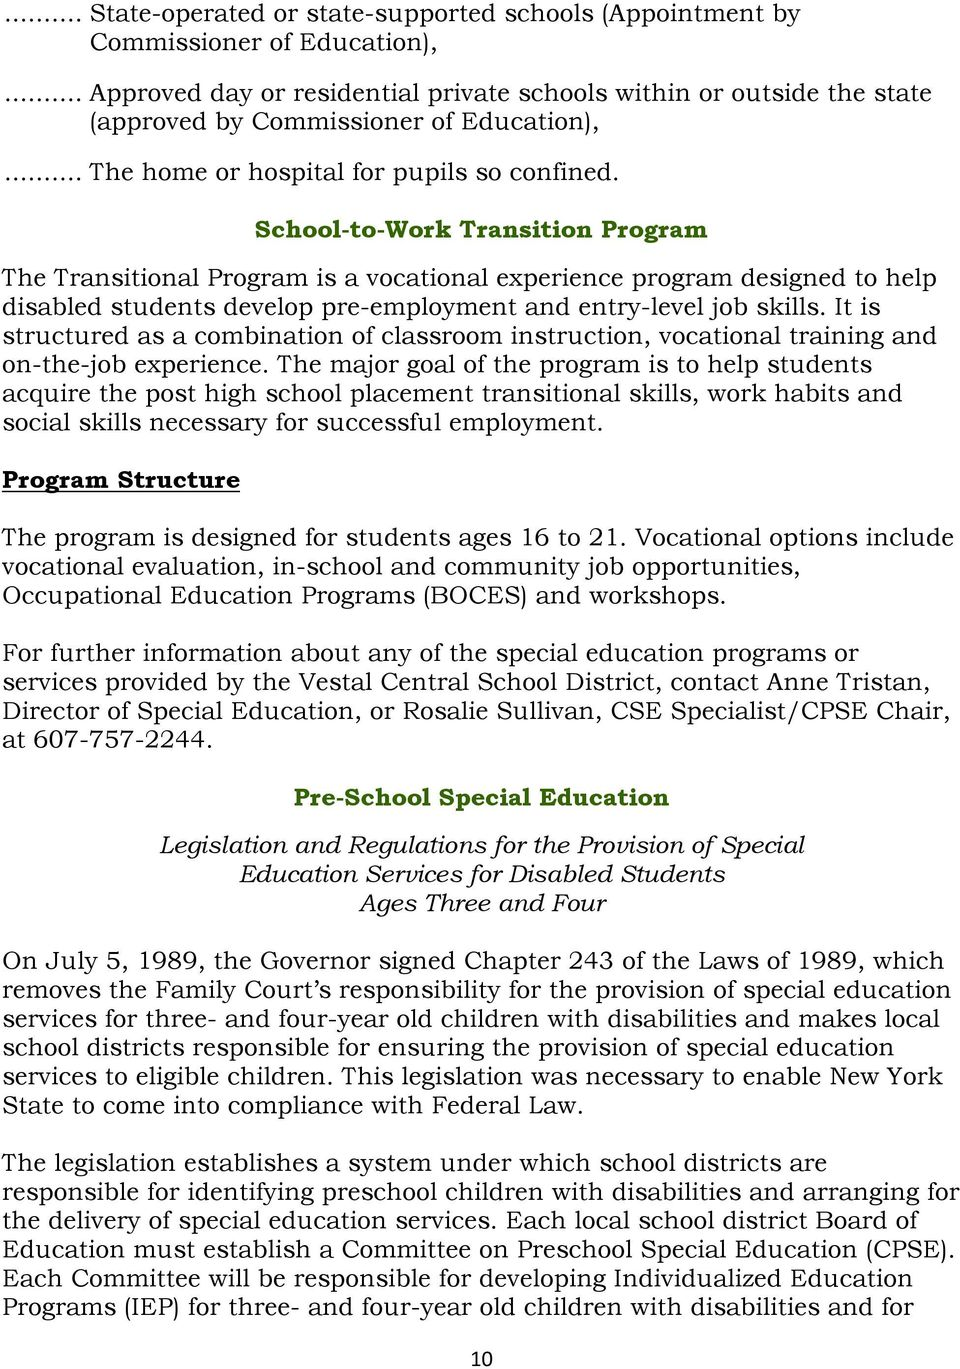 School-to-Work Transition Program The Transitional Program is a vocational experience program designed to help disabled students develop pre-employment and entry-level job skills.